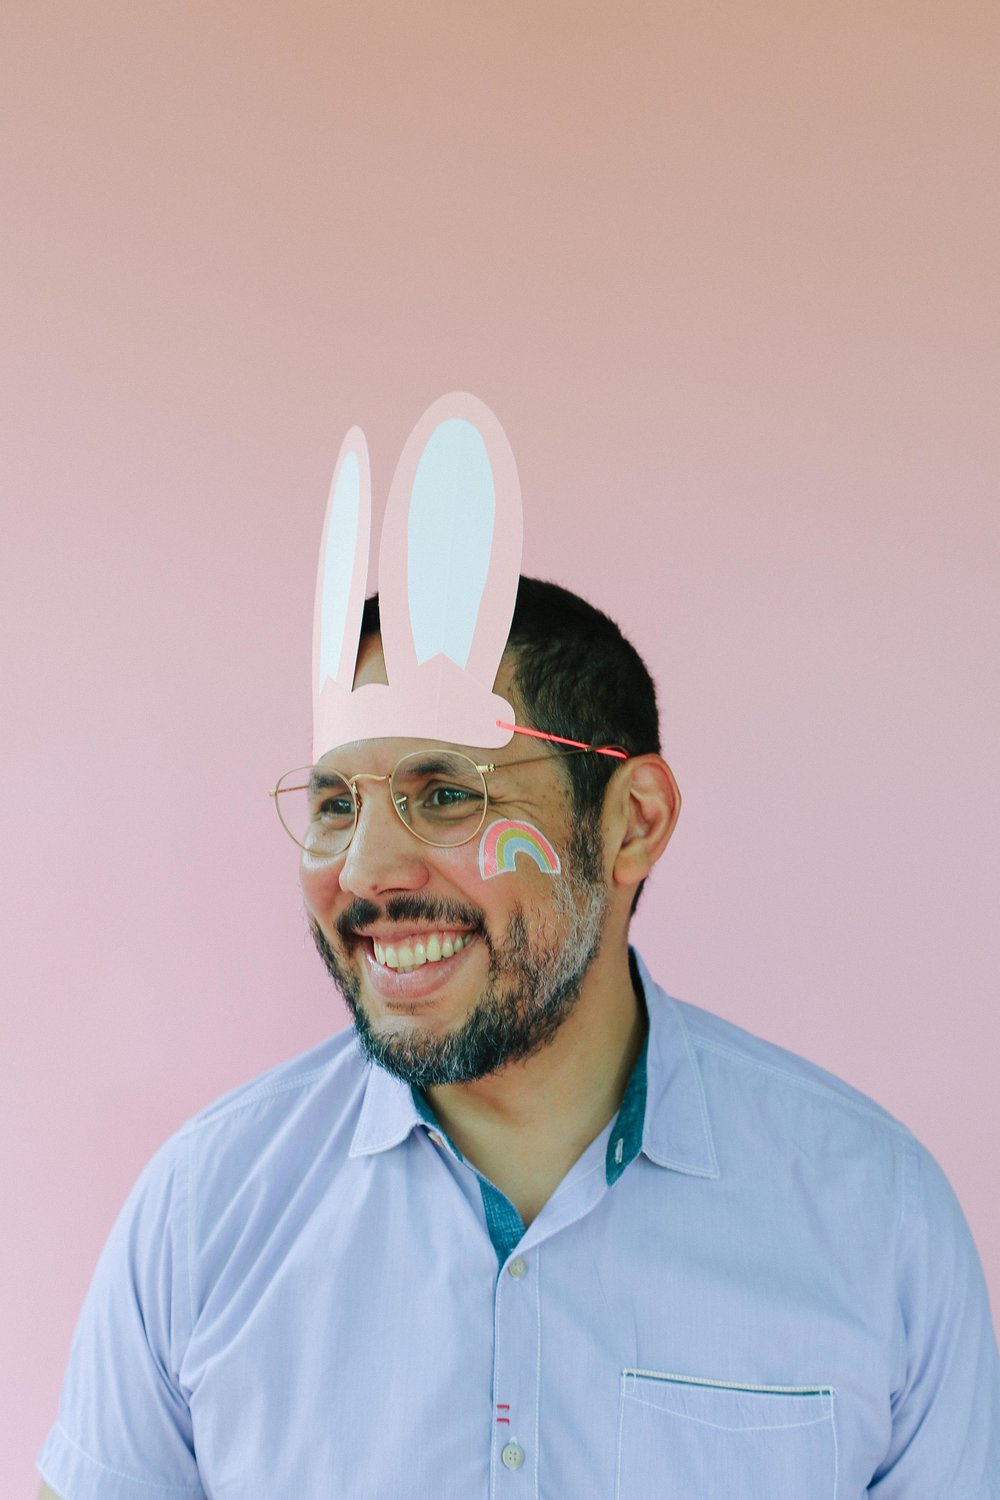 My husband is such a good sport, I absolutely love this portrait of him, rainbow tattoo and bunny ears. LOVE!